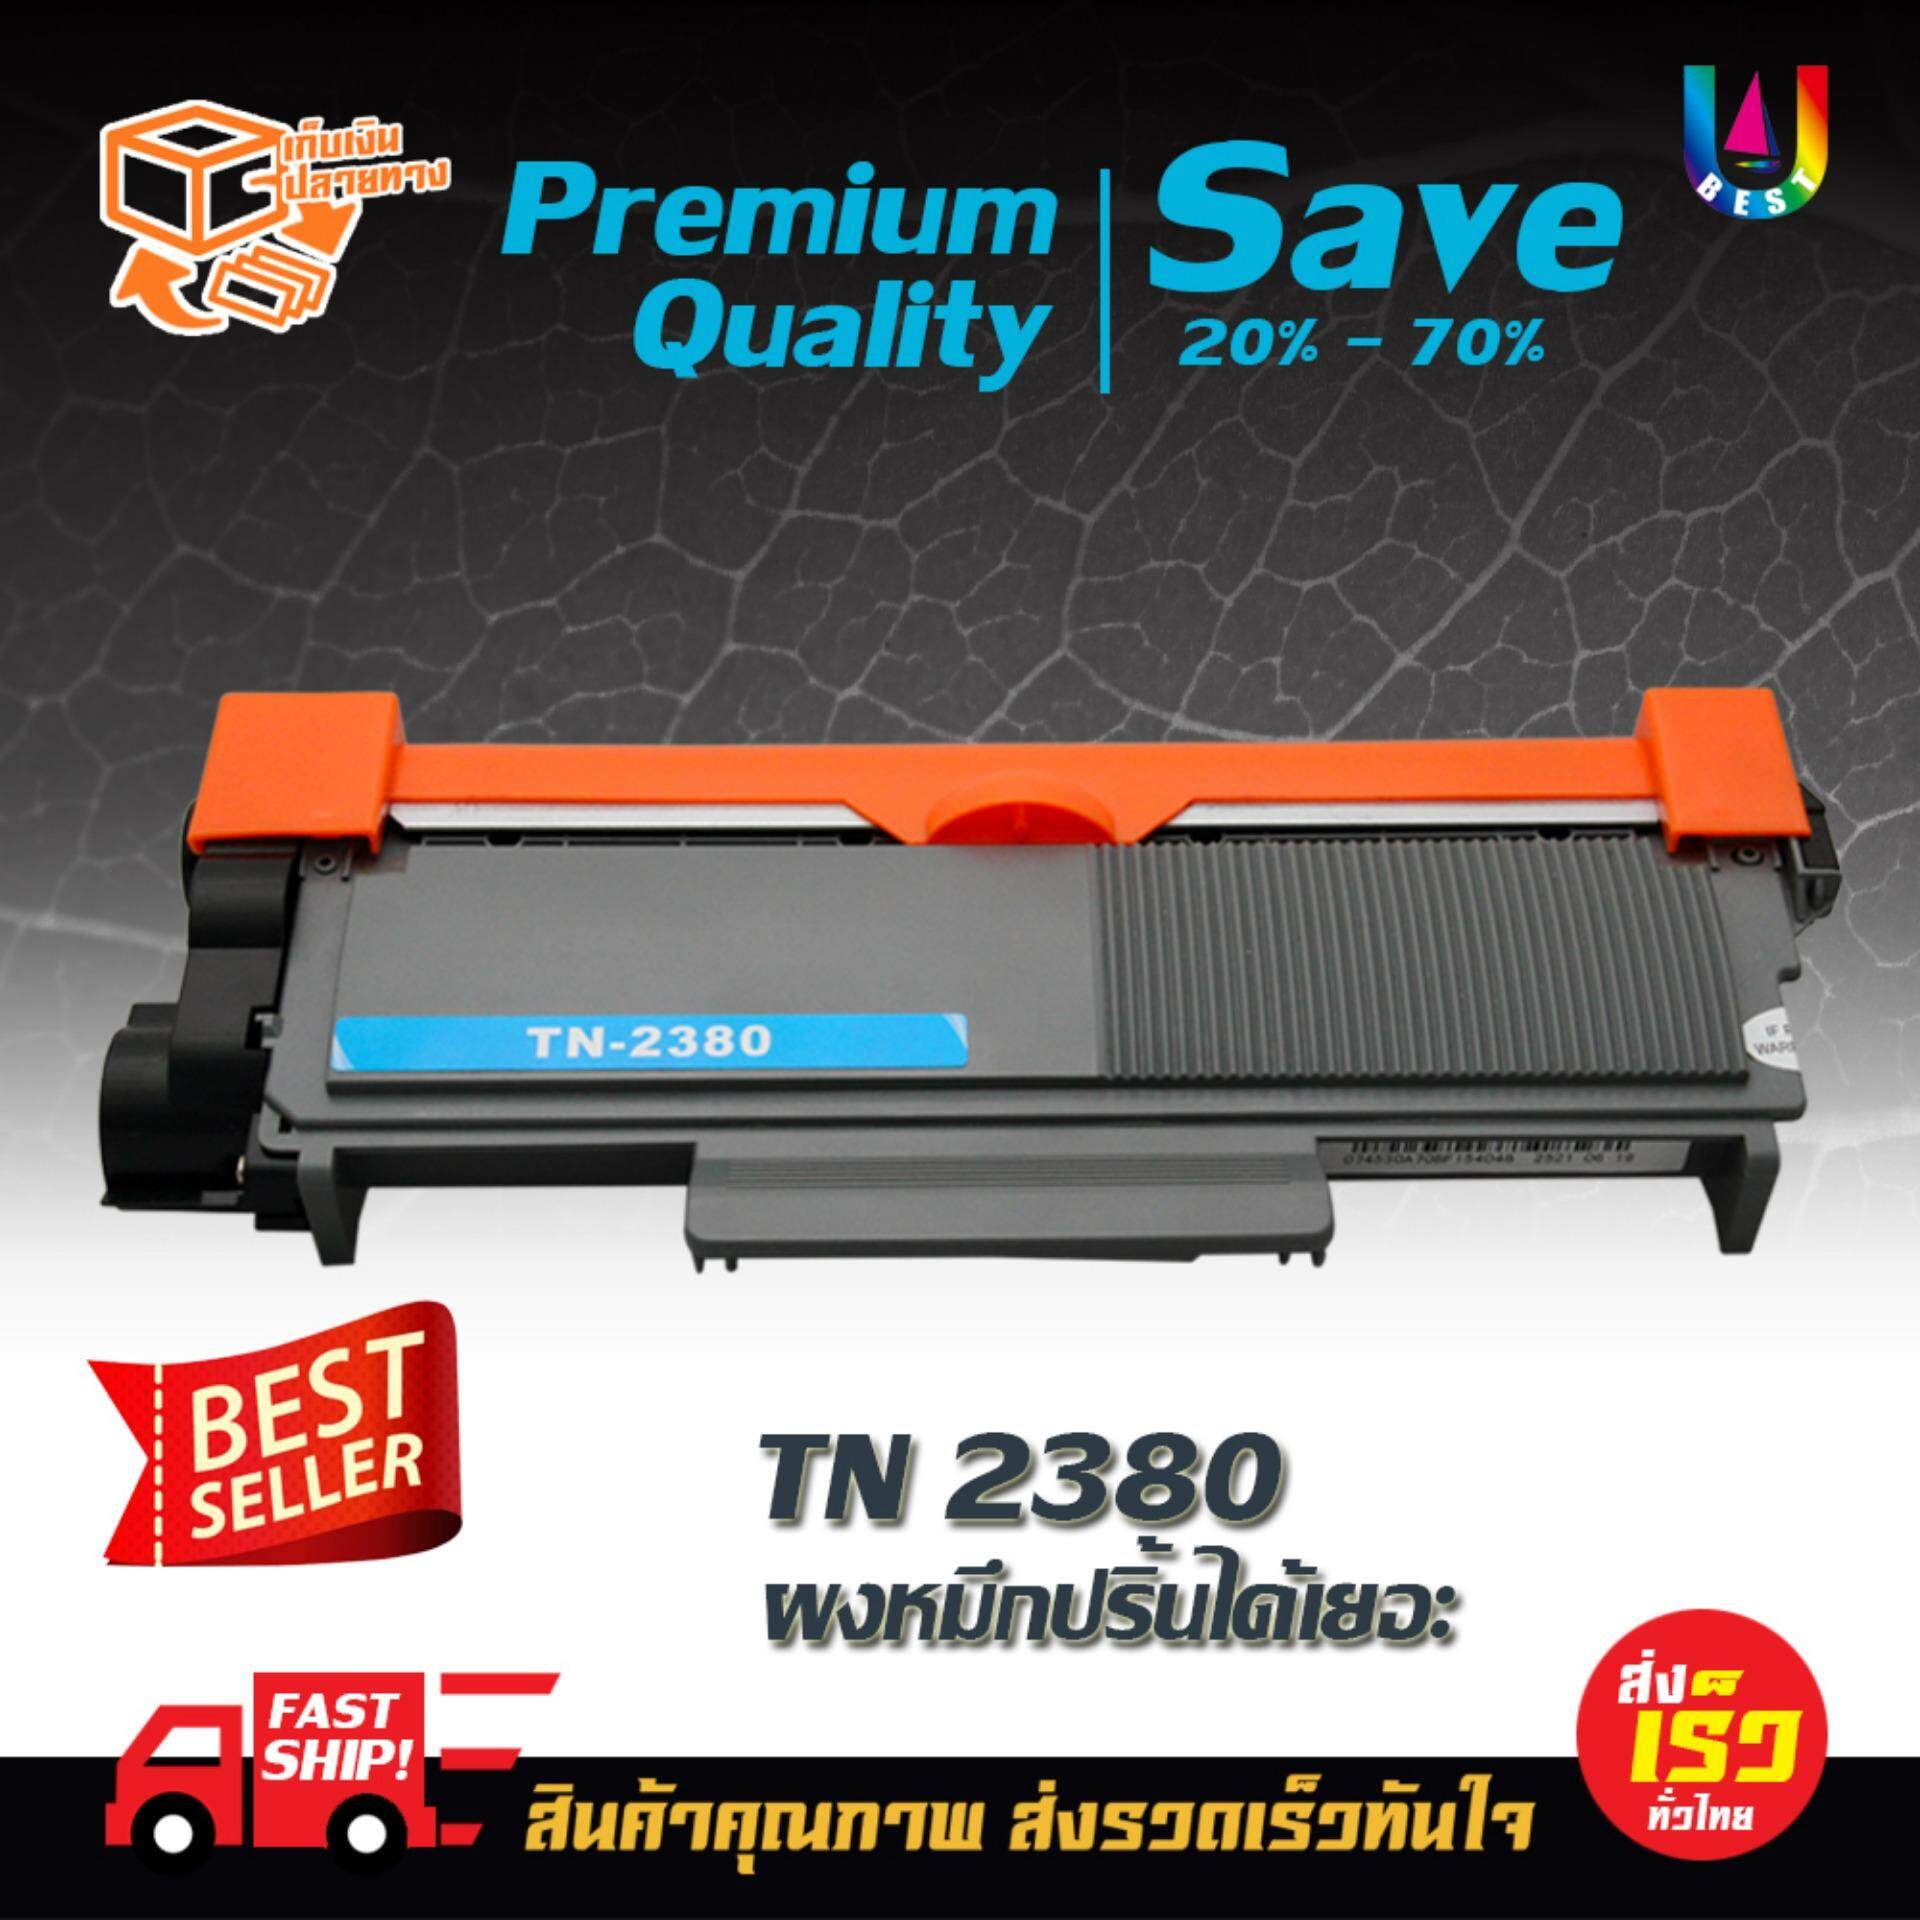 ขาย Axis Brother Hl 2300 2320 2340 2360 2365 2380 Dcp L2500 2520 2540 2560 Mfc L2700 2720 2740 Laser Toner Cartridge 2380 Tn 2380 Tn2380 Toozuzu